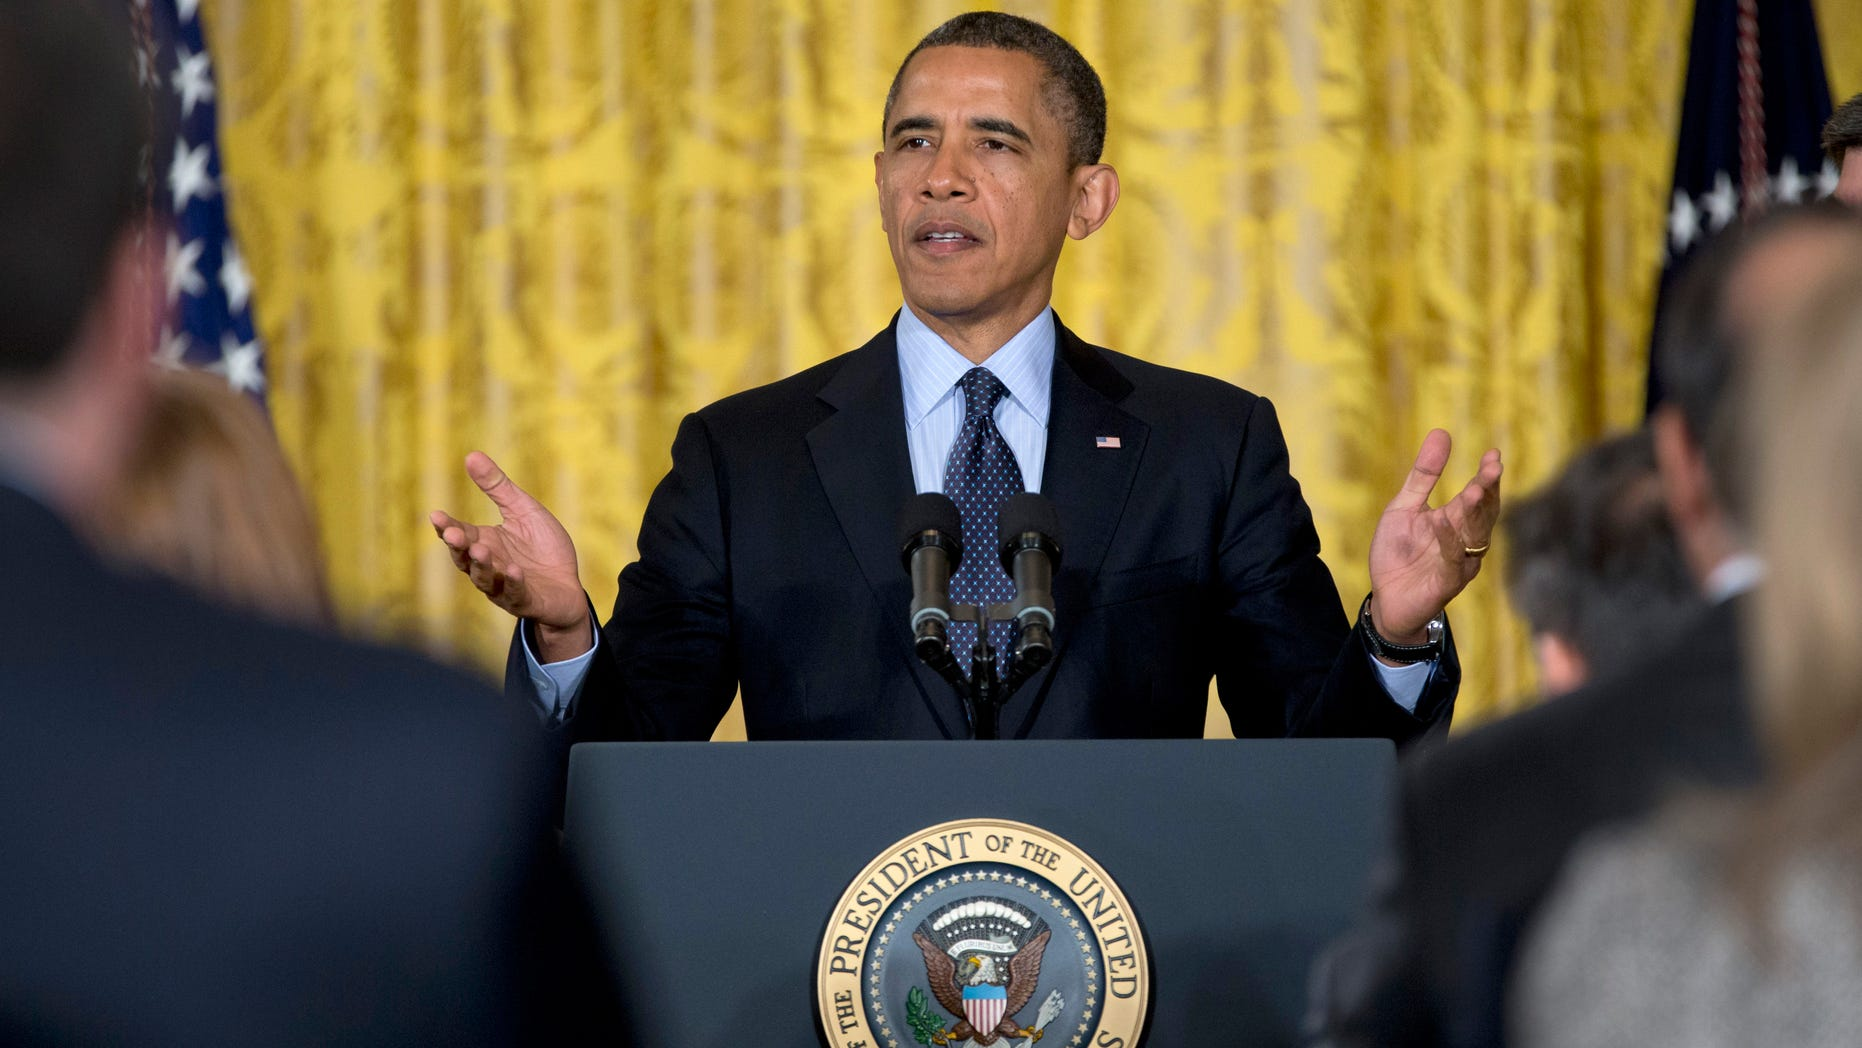 President Barack Obama gestures to the audience as he arrives in the East Room of the White House in Washington, Friday, Jan. 25, 2013, to announce that he will name current Deputy National Security Adviser Denis McDonough as his next chief of staff.  (AP Photo/Carolyn Kaster)